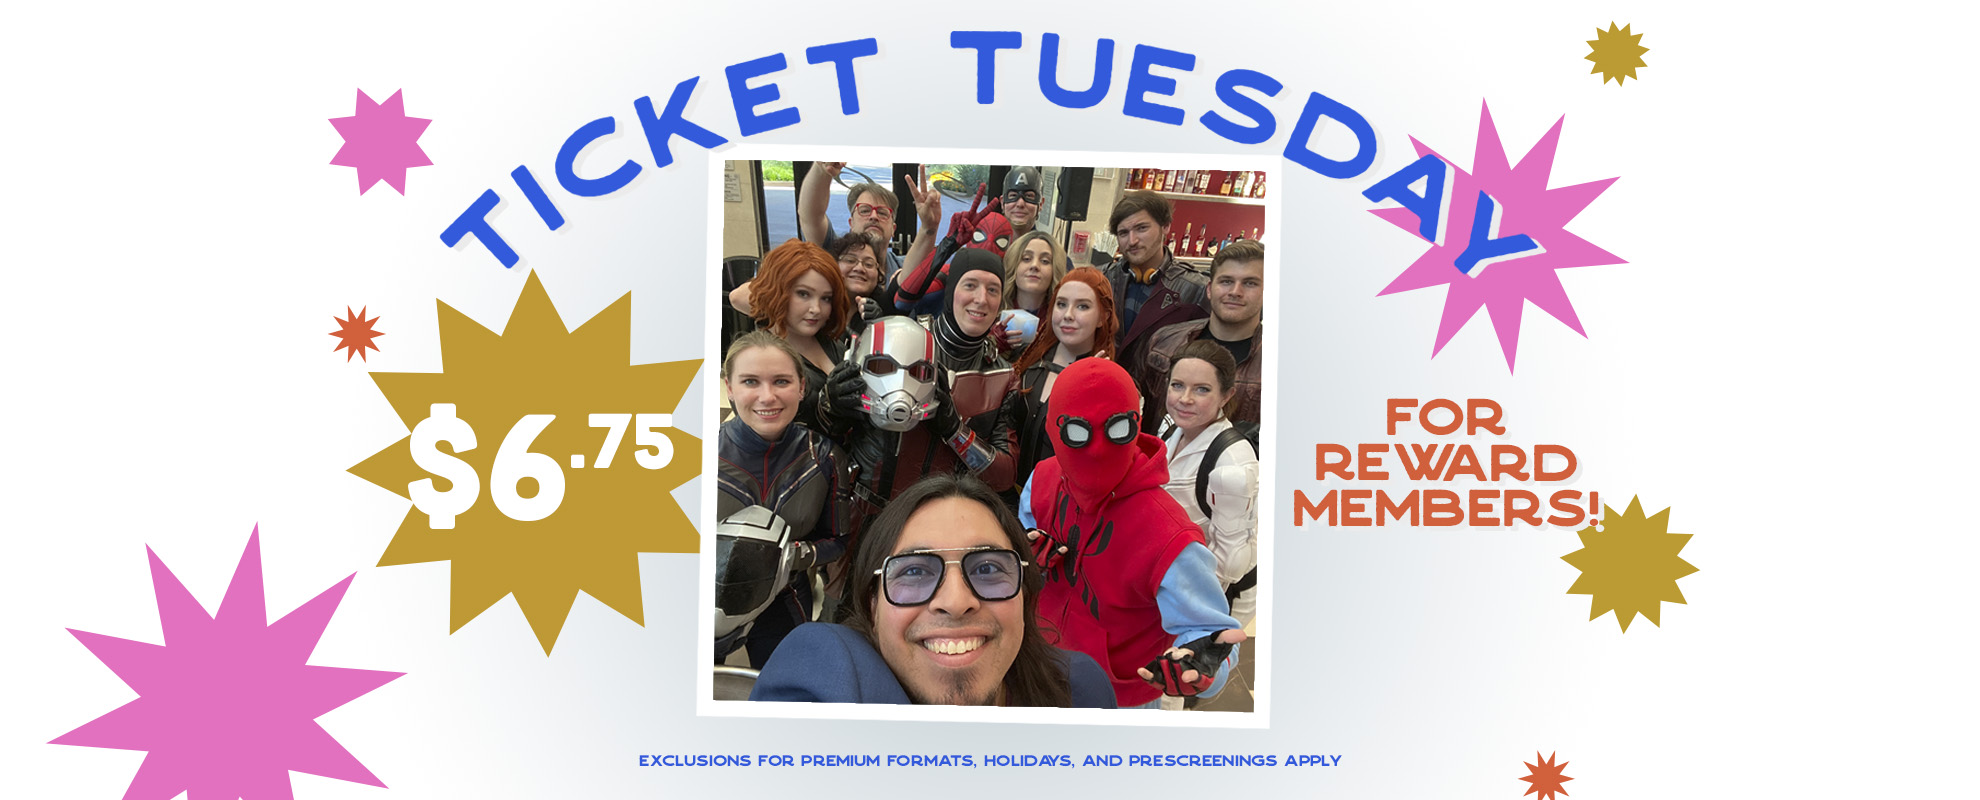 $6.75 Ticket Tuesday image